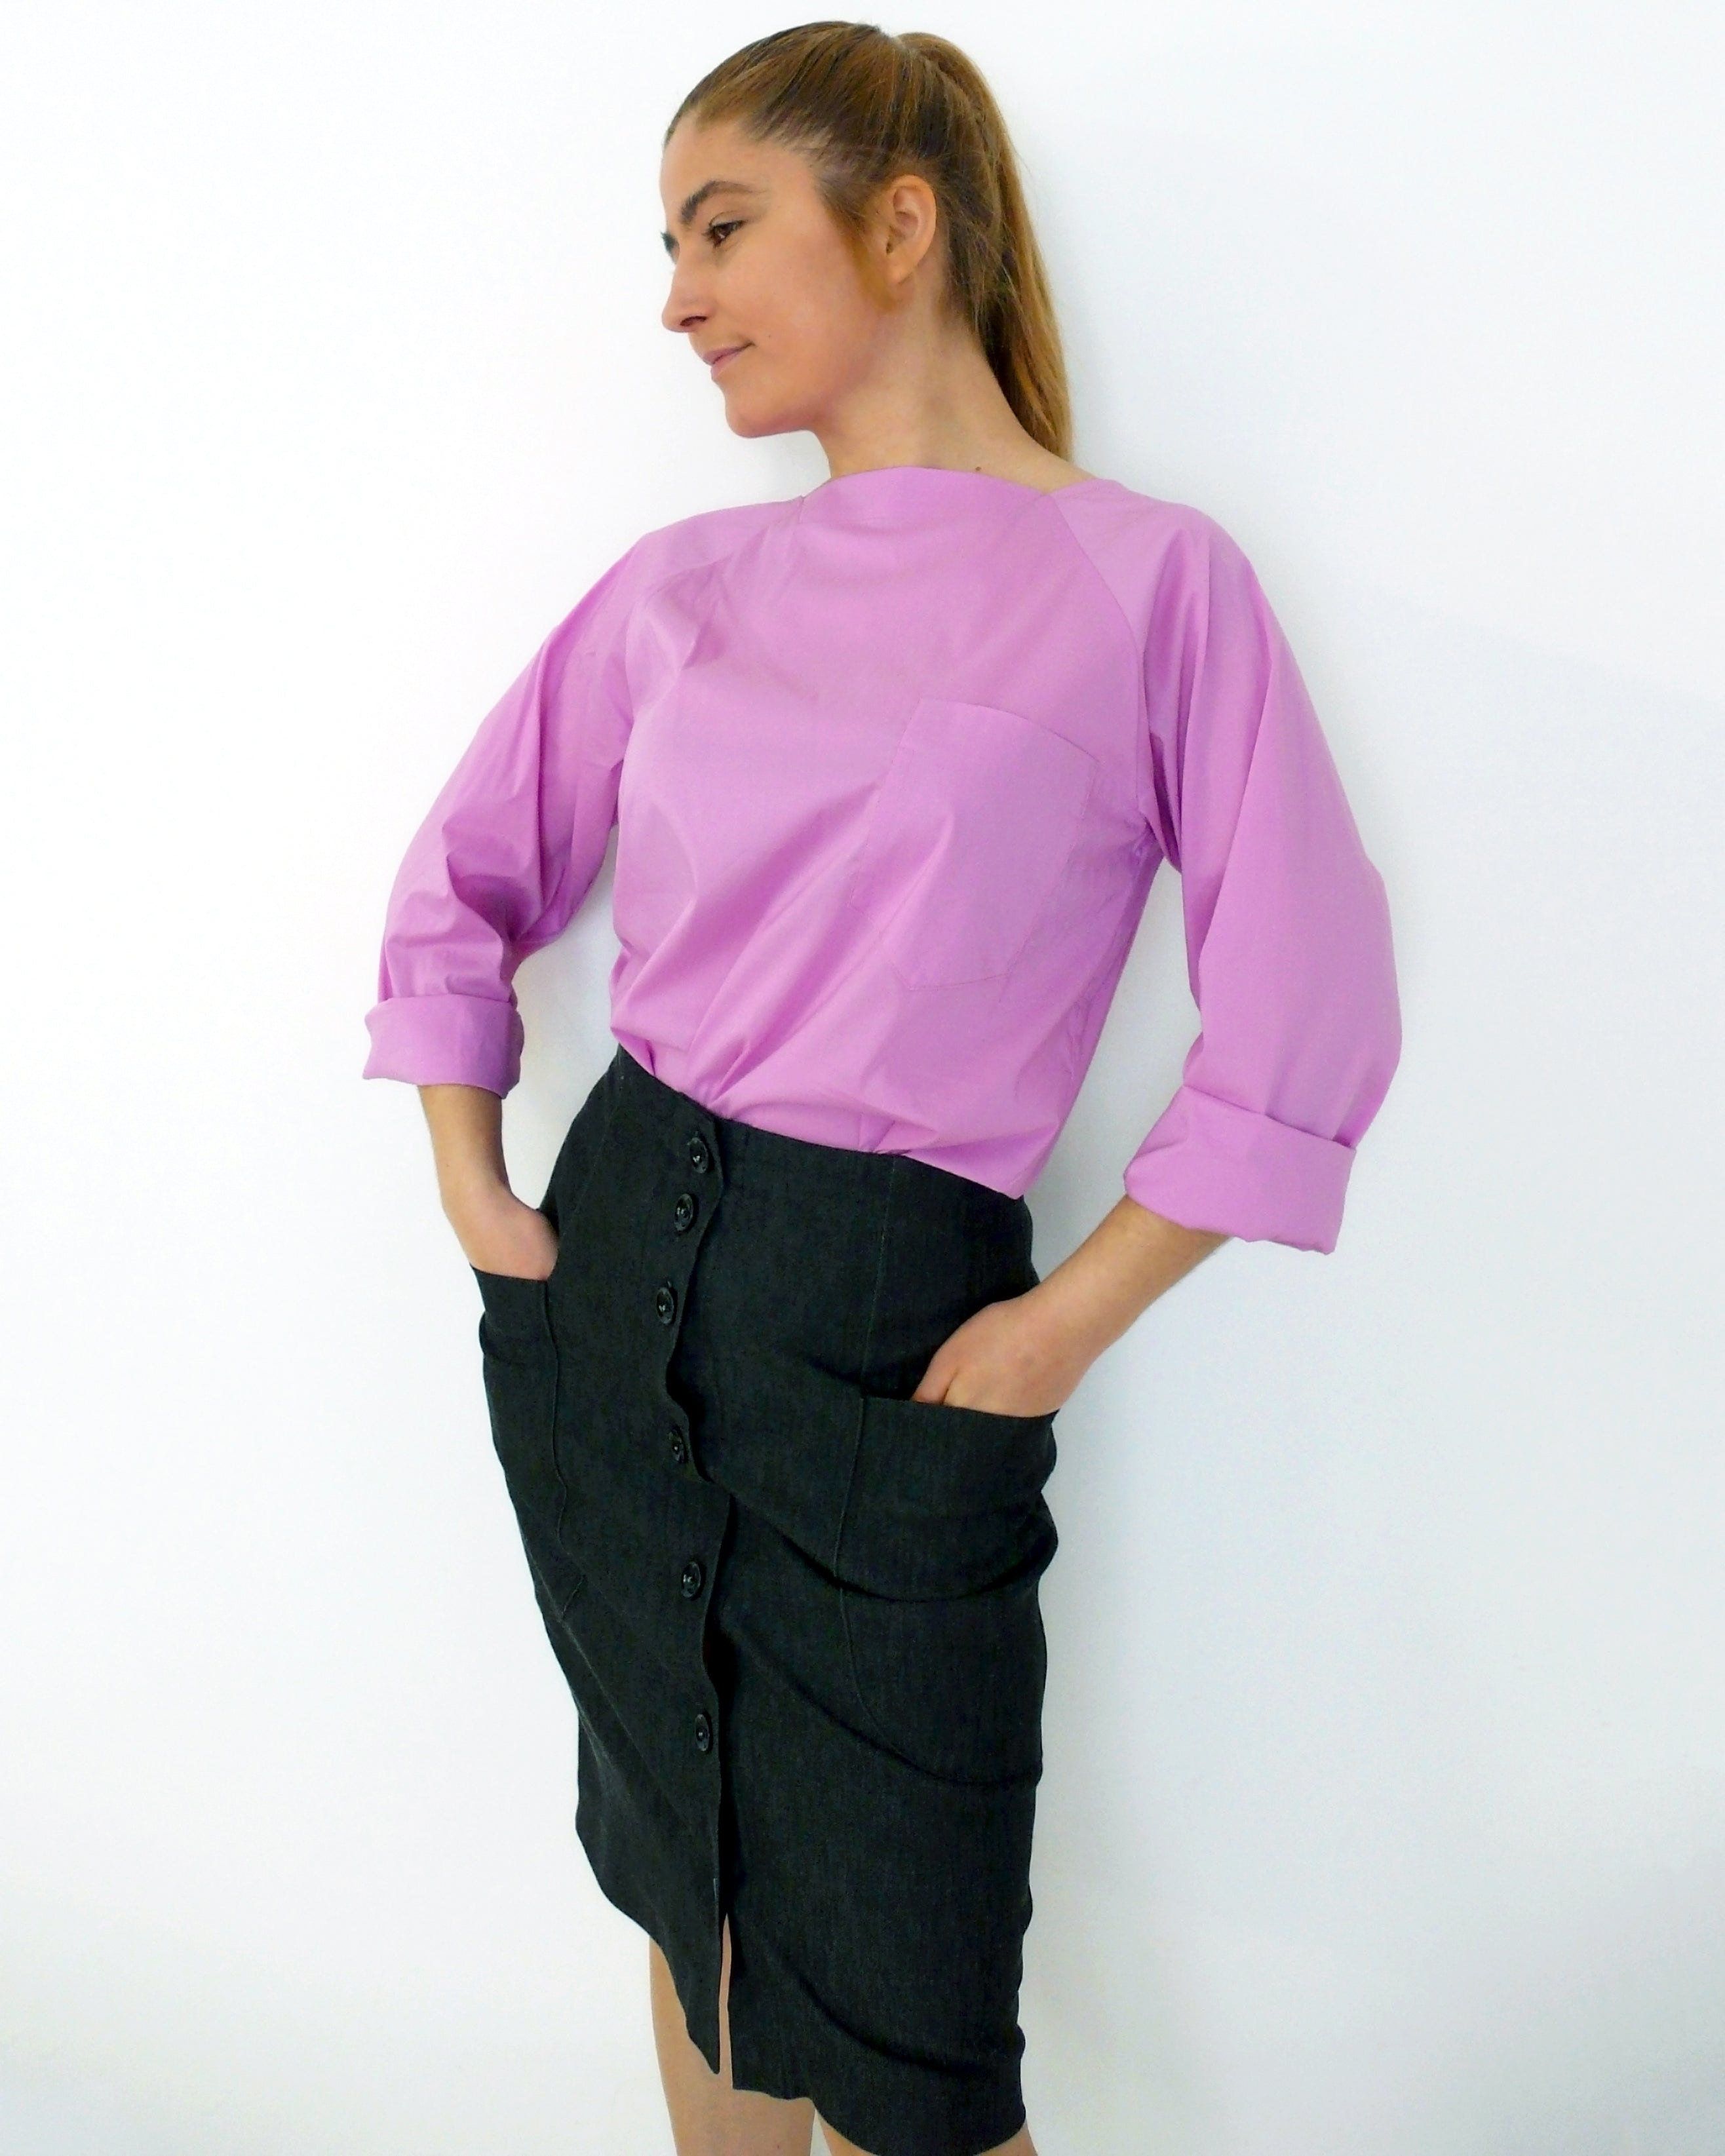 woven blouse with pocket squared neckline and raglan sleeve